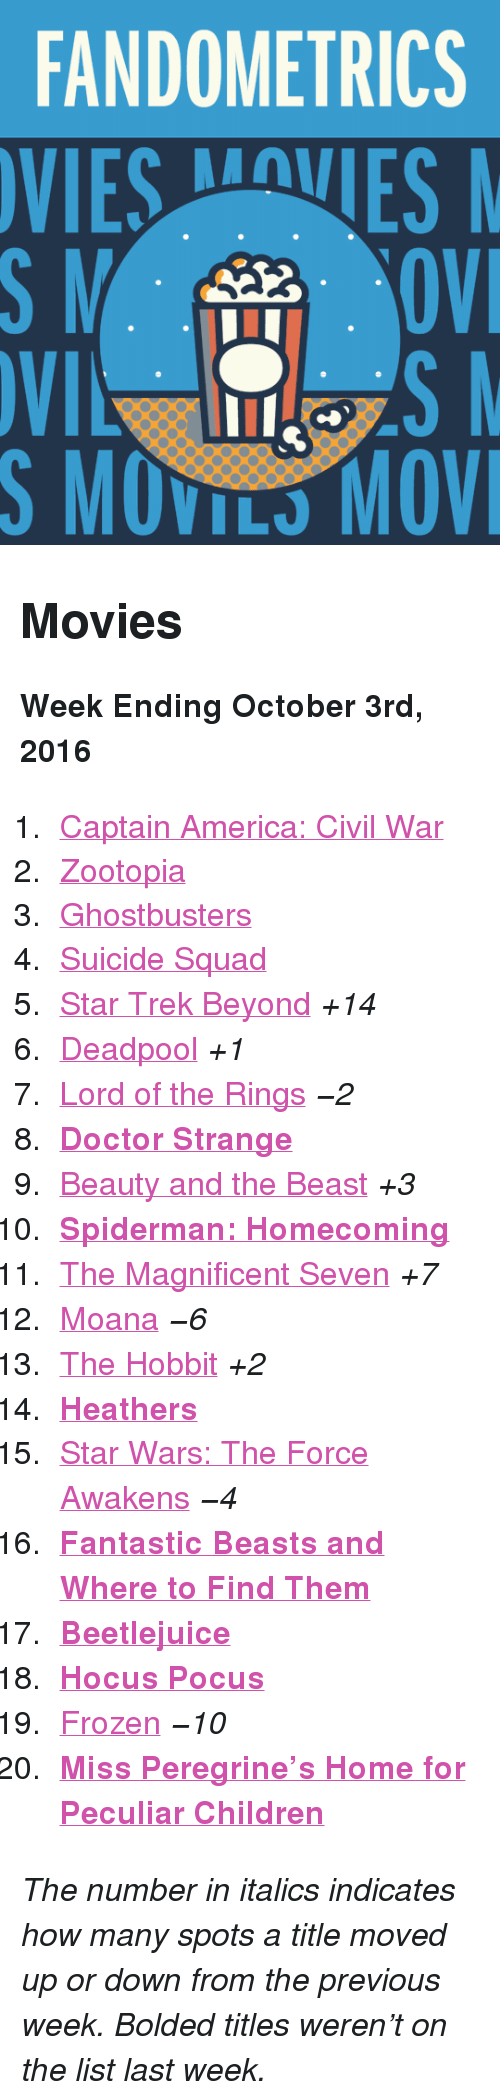 "moana: FANDOMETRICS  VIESVES  S MOVILS MOV <h2>Movies</h2><p><b>Week Ending October 3rd, 2016</b></p><ol><li><a href=""http://www.tumblr.com/search/captain%20america%20civil%20war"">Captain America: Civil War</a></li>  <li><a href=""http://www.tumblr.com/search/zootopia"">Zootopia</a></li>  <li><a href=""http://www.tumblr.com/search/ghostbusters"">Ghostbusters</a></li>  <li><a href=""http://www.tumblr.com/search/suicide%20squad"">Suicide Squad</a></li>  <li><a href=""http://www.tumblr.com/search/star%20trek%20beyond"">Star Trek Beyond</a> <i>+14</i></li>  <li><a href=""http://www.tumblr.com/search/deadpool"">Deadpool</a> <i>+1</i></li>  <li><a href=""http://www.tumblr.com/search/lotr"">Lord of the Rings</a> <i>−2</i></li>  <li><a href=""http://www.tumblr.com/search/doctor%20strange""><b>Doctor Strange</b></a></li>  <li><a href=""http://www.tumblr.com/search/beauty%20and%20the%20beast"">Beauty and the Beast</a> <i>+3</i></li>  <li><a href=""http://www.tumblr.com/search/spiderman%20homecoming""><b>Spiderman: Homecoming</b></a></li>  <li><a href=""http://www.tumblr.com/search/the%20magnificent%20seven"">The Magnificent Seven</a> <i>+7</i></li>  <li><a href=""http://www.tumblr.com/search/moana"">Moana</a> <i>−6</i></li>  <li><a href=""http://www.tumblr.com/search/the%20hobbit"">The Hobbit</a> <i>+2</i></li>  <li><a href=""http://www.tumblr.com/search/heathers""><b>Heathers</b></a></li>  <li><a href=""http://www.tumblr.com/search/the%20force%20awakens"">Star Wars: The Force Awakens</a> <i>−4</i></li>  <li><a href=""http://www.tumblr.com/search/fantastic%20beasts%20and%20where%20to%20find%20them""><b>Fantastic Beasts and Where to Find Them</b></a></li>  <li><a href=""http://www.tumblr.com/search/beetlejuice""><b>Beetlejuice</b></a></li>  <li><a href=""http://www.tumblr.com/search/hocus%20pocus""><b>Hocus Pocus</b></a></li>  <li><a href=""http://www.tumblr.com/search/frozen"">Frozen</a> <i>−10</i></li>  <li><a href=""http://www.tumblr.com/search/miss%20peregrines""><b>Miss Peregrine&rsquo;s Home for Peculiar Children</b></a></li></ol><p><i>The number in italics indicates how many spots a title moved up or down from the previous week. Bolded titles weren't on the list last week.</i></p>"